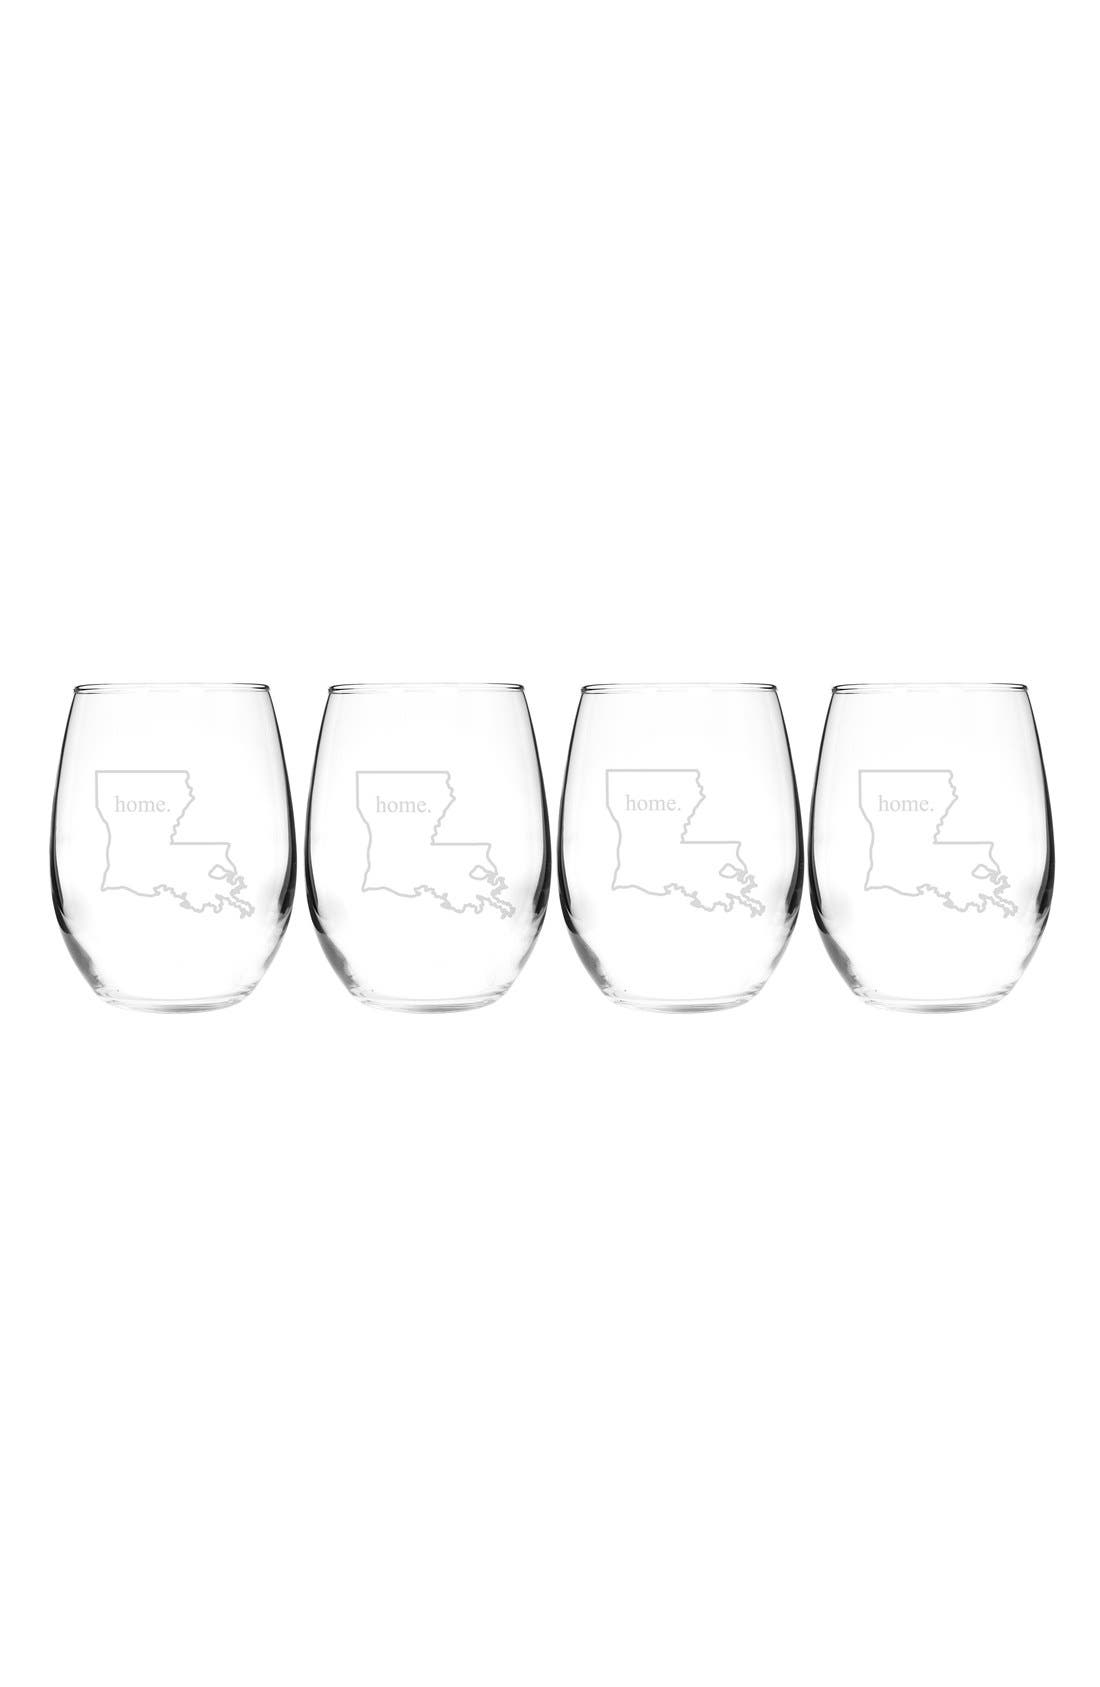 Home State Set of 4 Stemless Wine Glasses,                             Main thumbnail 19, color,